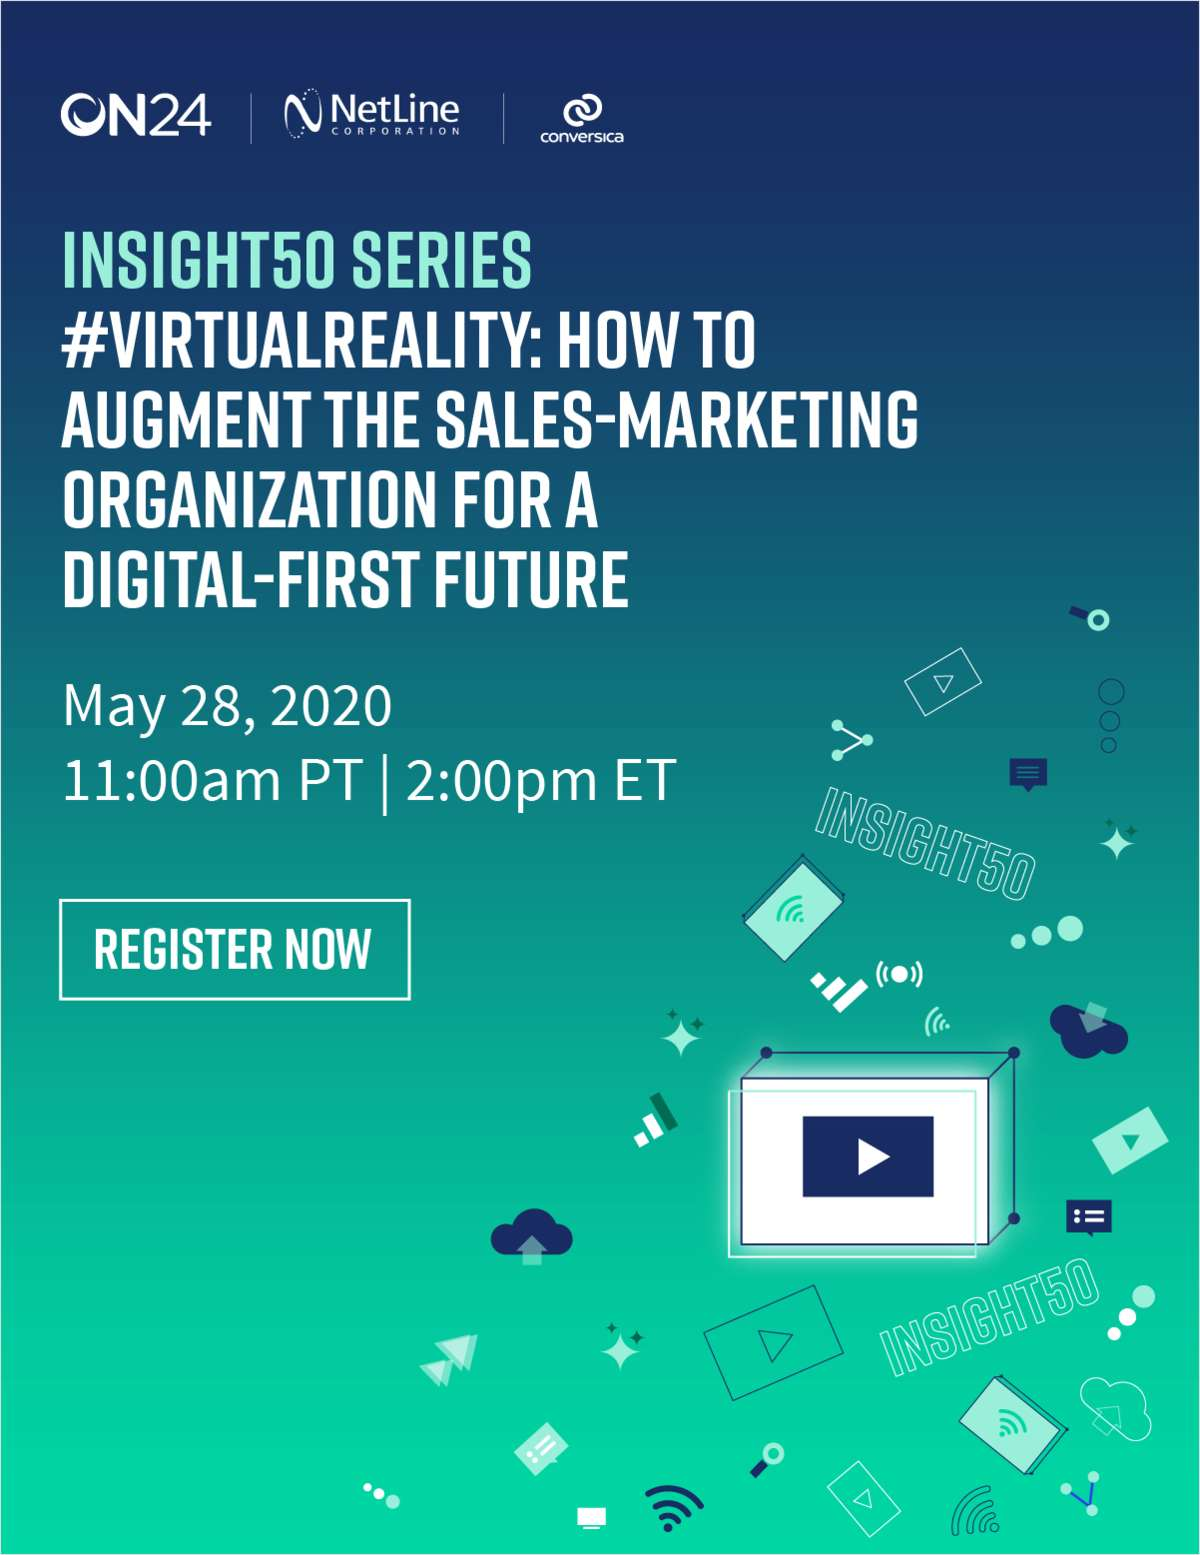 #VirtualReality: How to Augment the Sales-Marketing Organization for a Digital-First Future